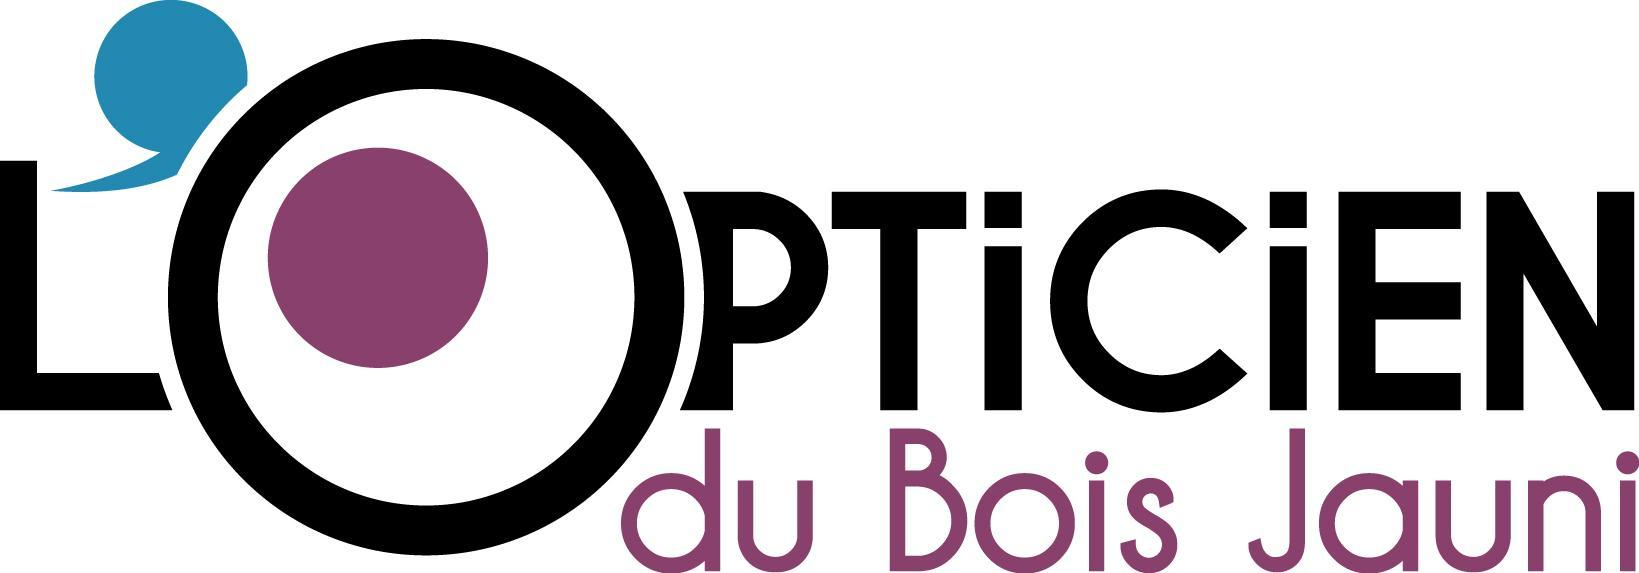 Opticien du Bois Jauni